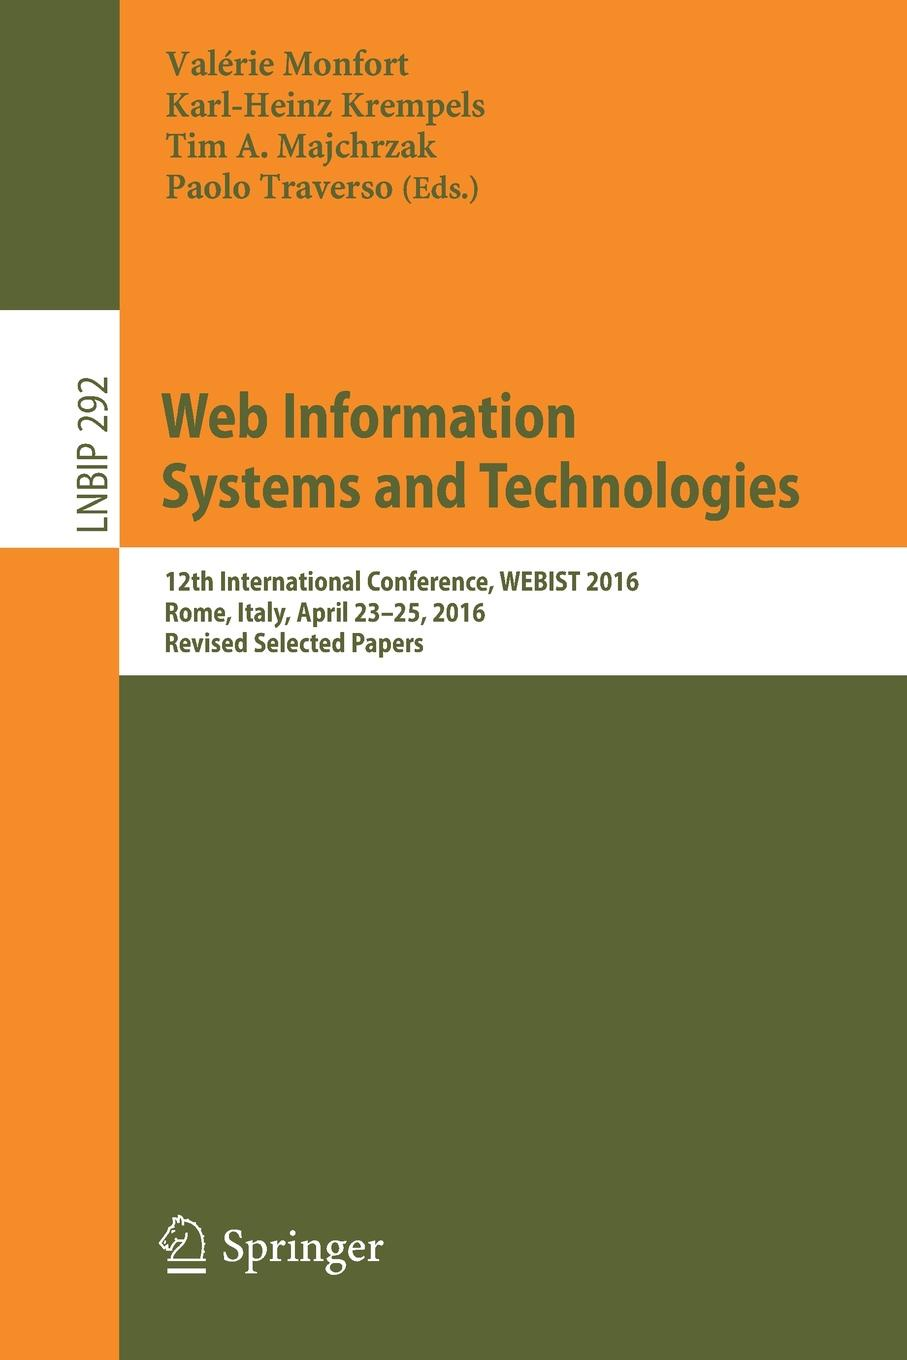 Web Information Systems and Technologies. 12th International Conference, WEBIST 2016, Rome, Italy, April 23-25, 2016, Revised Selected Papers цены